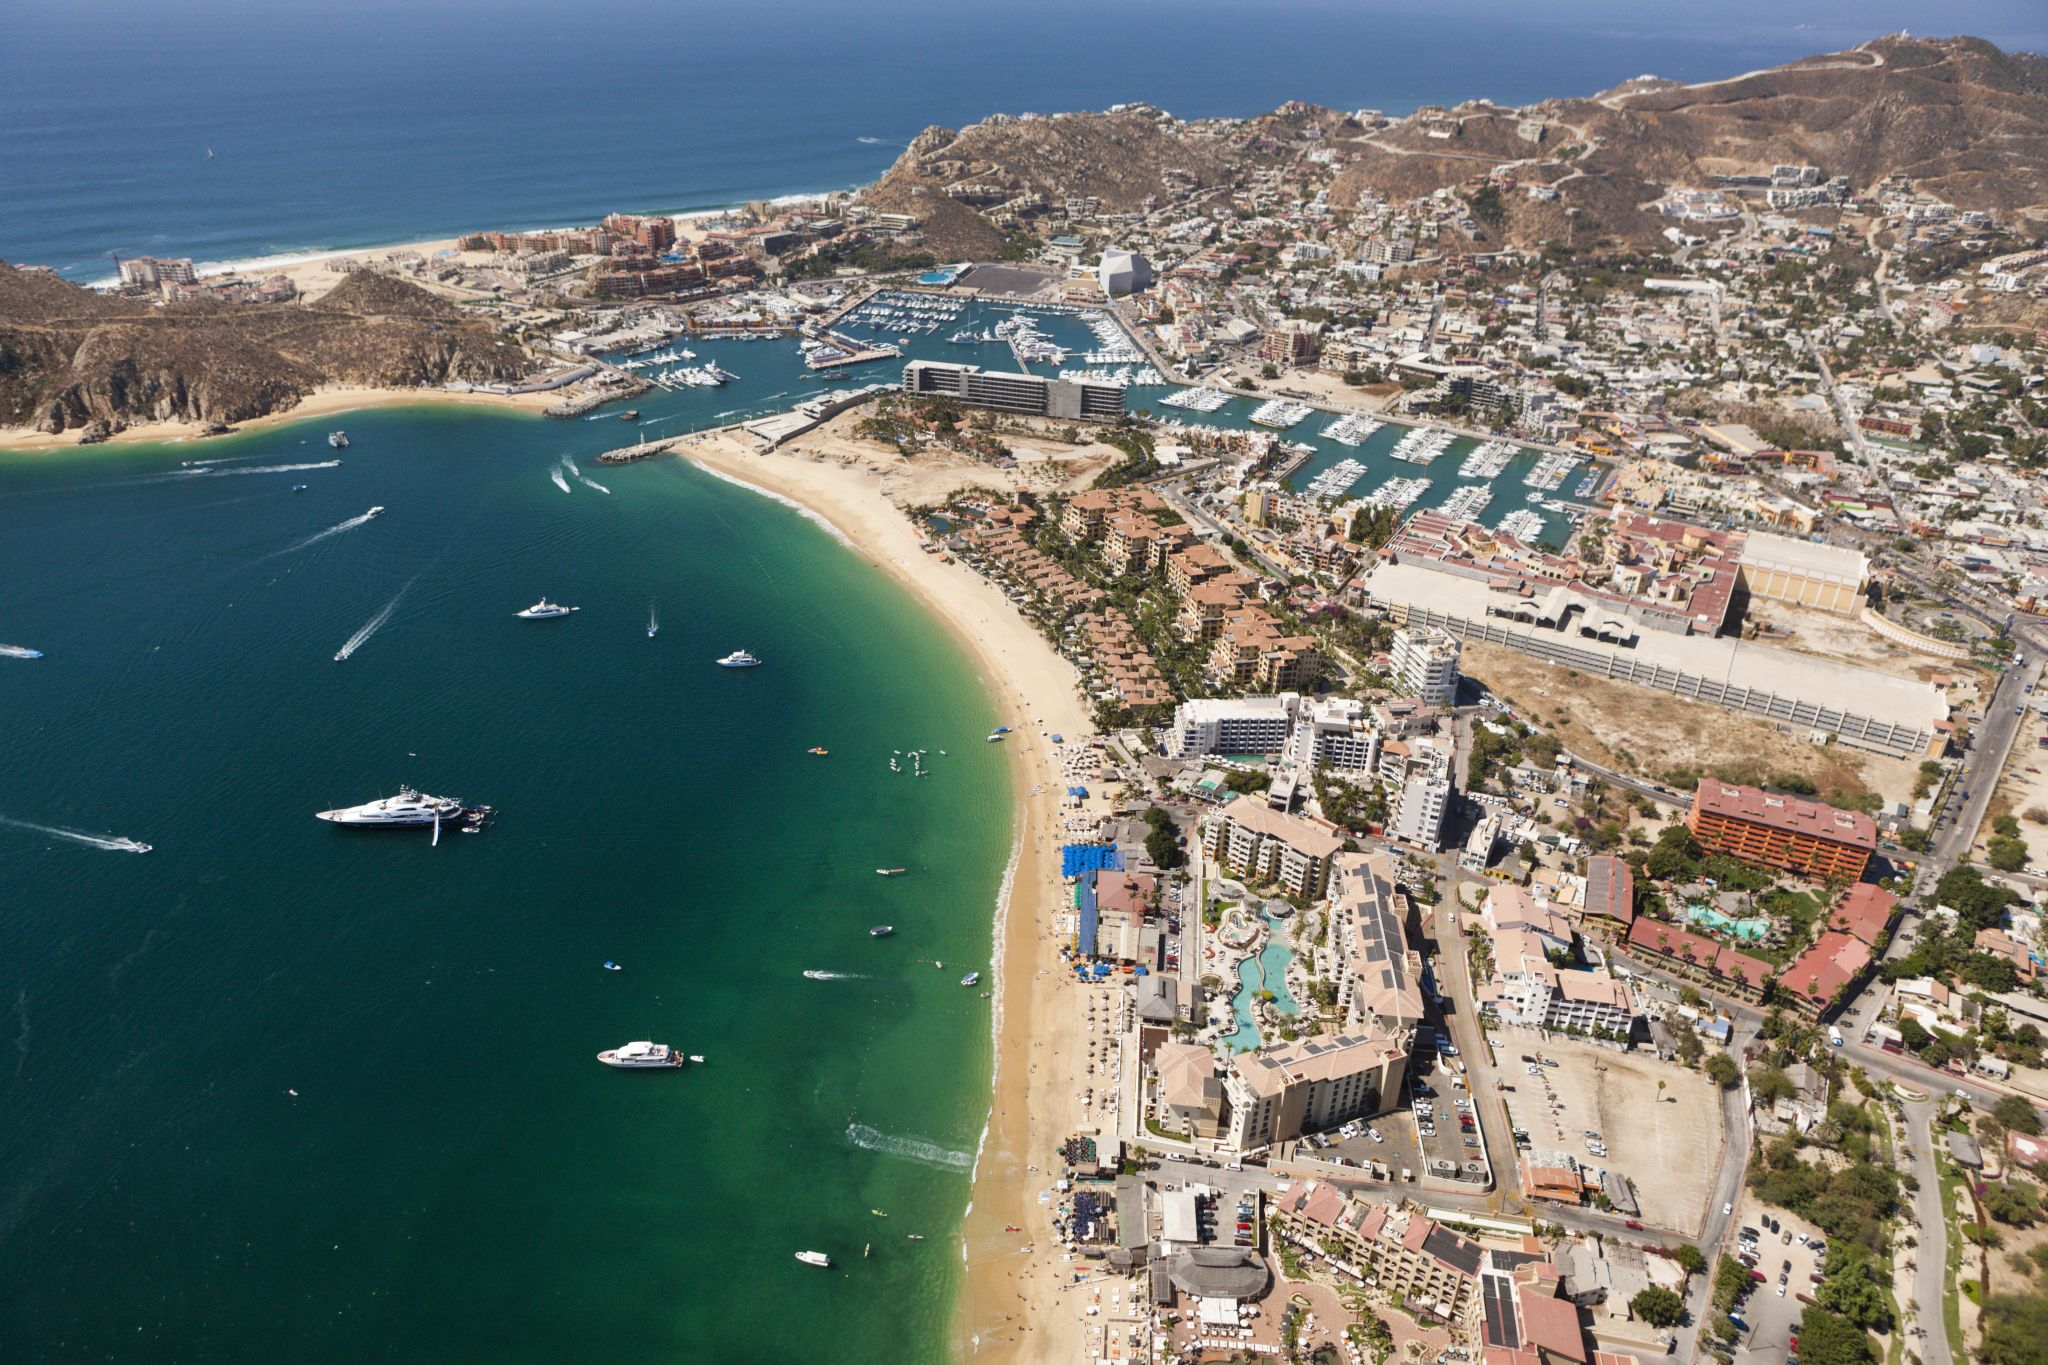 san lucas muslim single men The perfect place for singles to meet,  wyndham cabo san lucas resort is conveniently located along the marina in the heart of downtown cabo san lucas, mexico,.